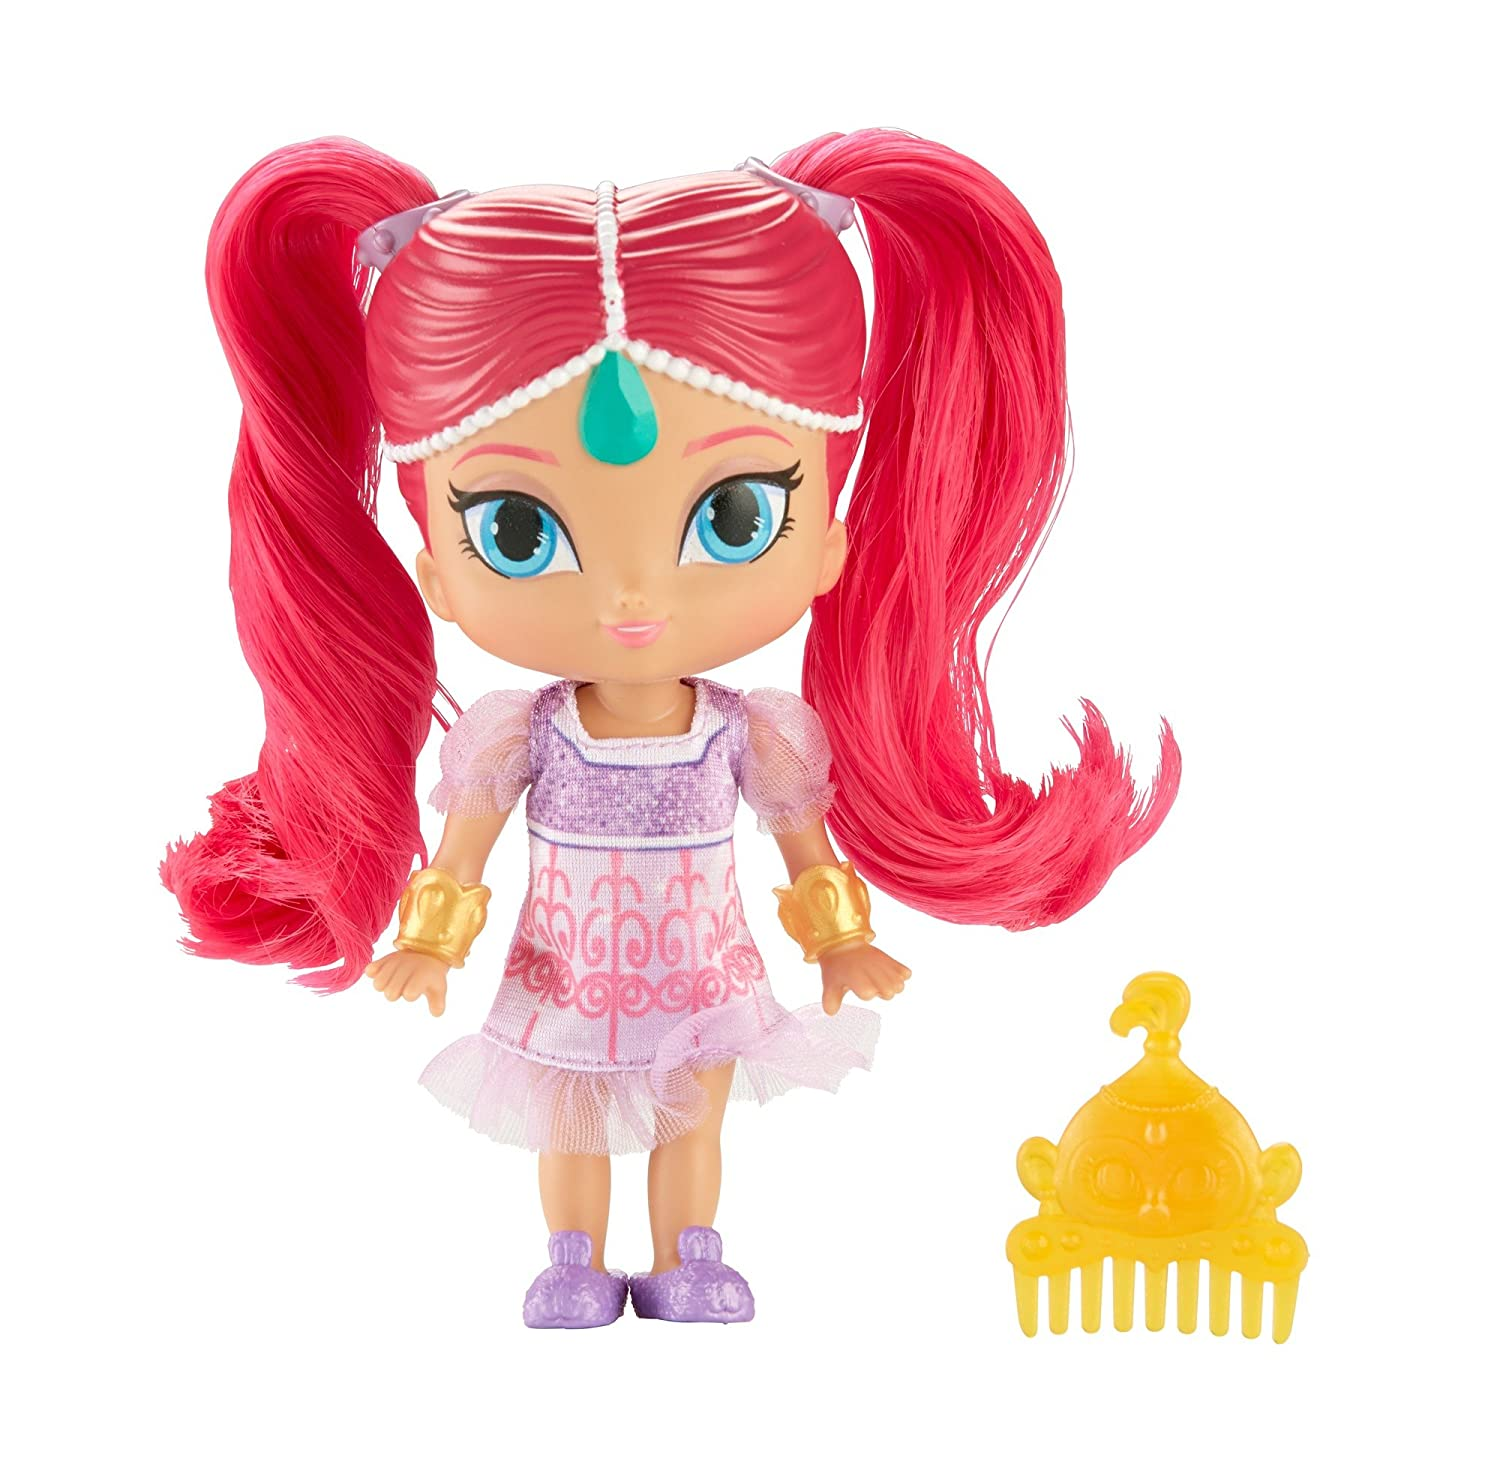 Fisher-Price Nickelodeon Shimmer & Shine, Shine Mattel DLH57